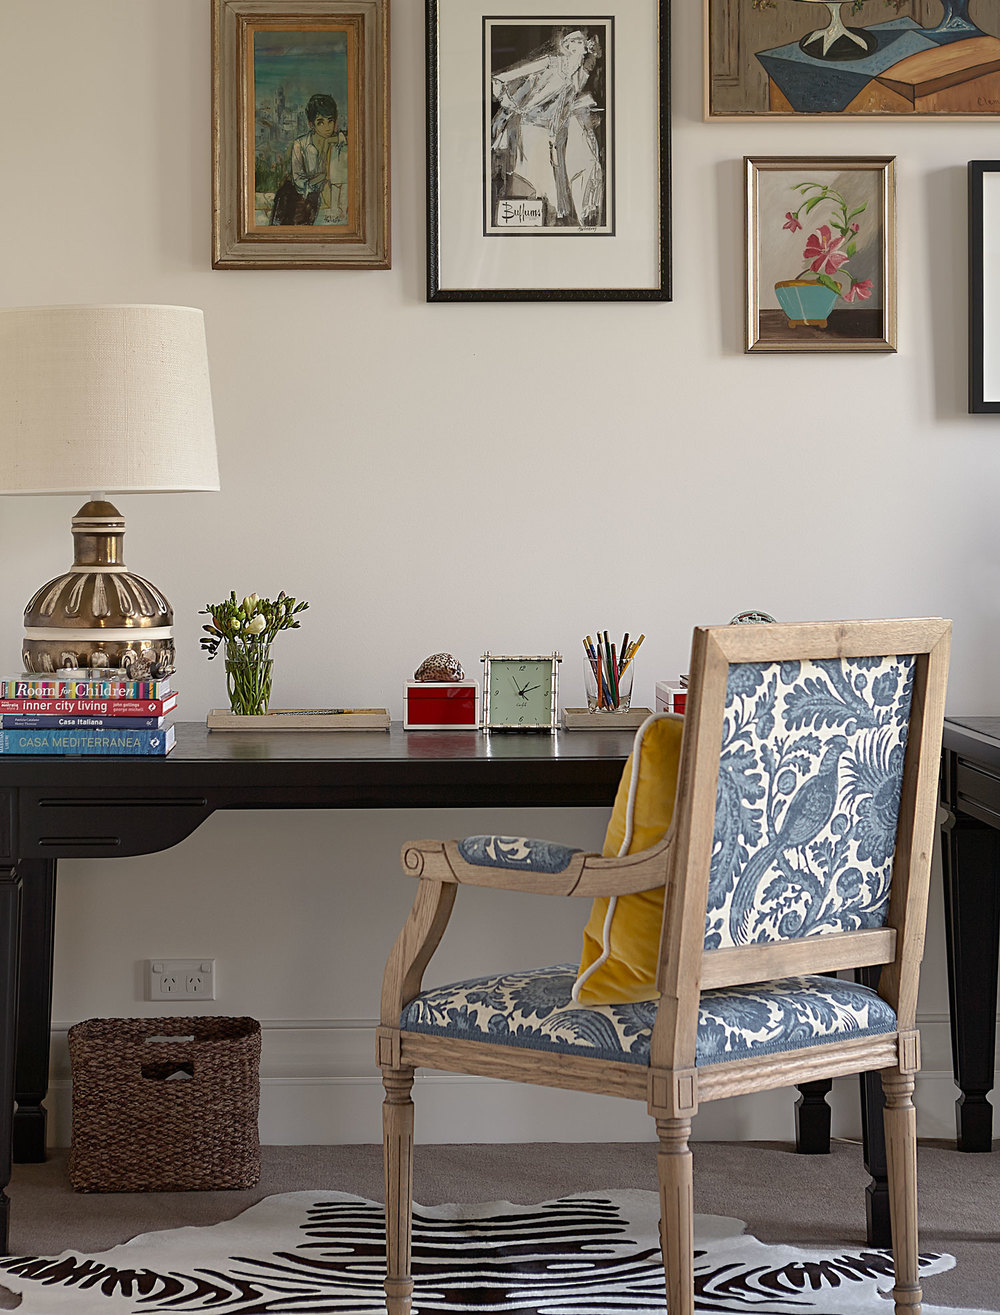 home-office-desk-black-lacquer-traditional-armchair-blue-printed-fabric-zebra--rug-vintage-lamp-gallery-prints-basket-yellow-cushion-diane-bergeron.jpg